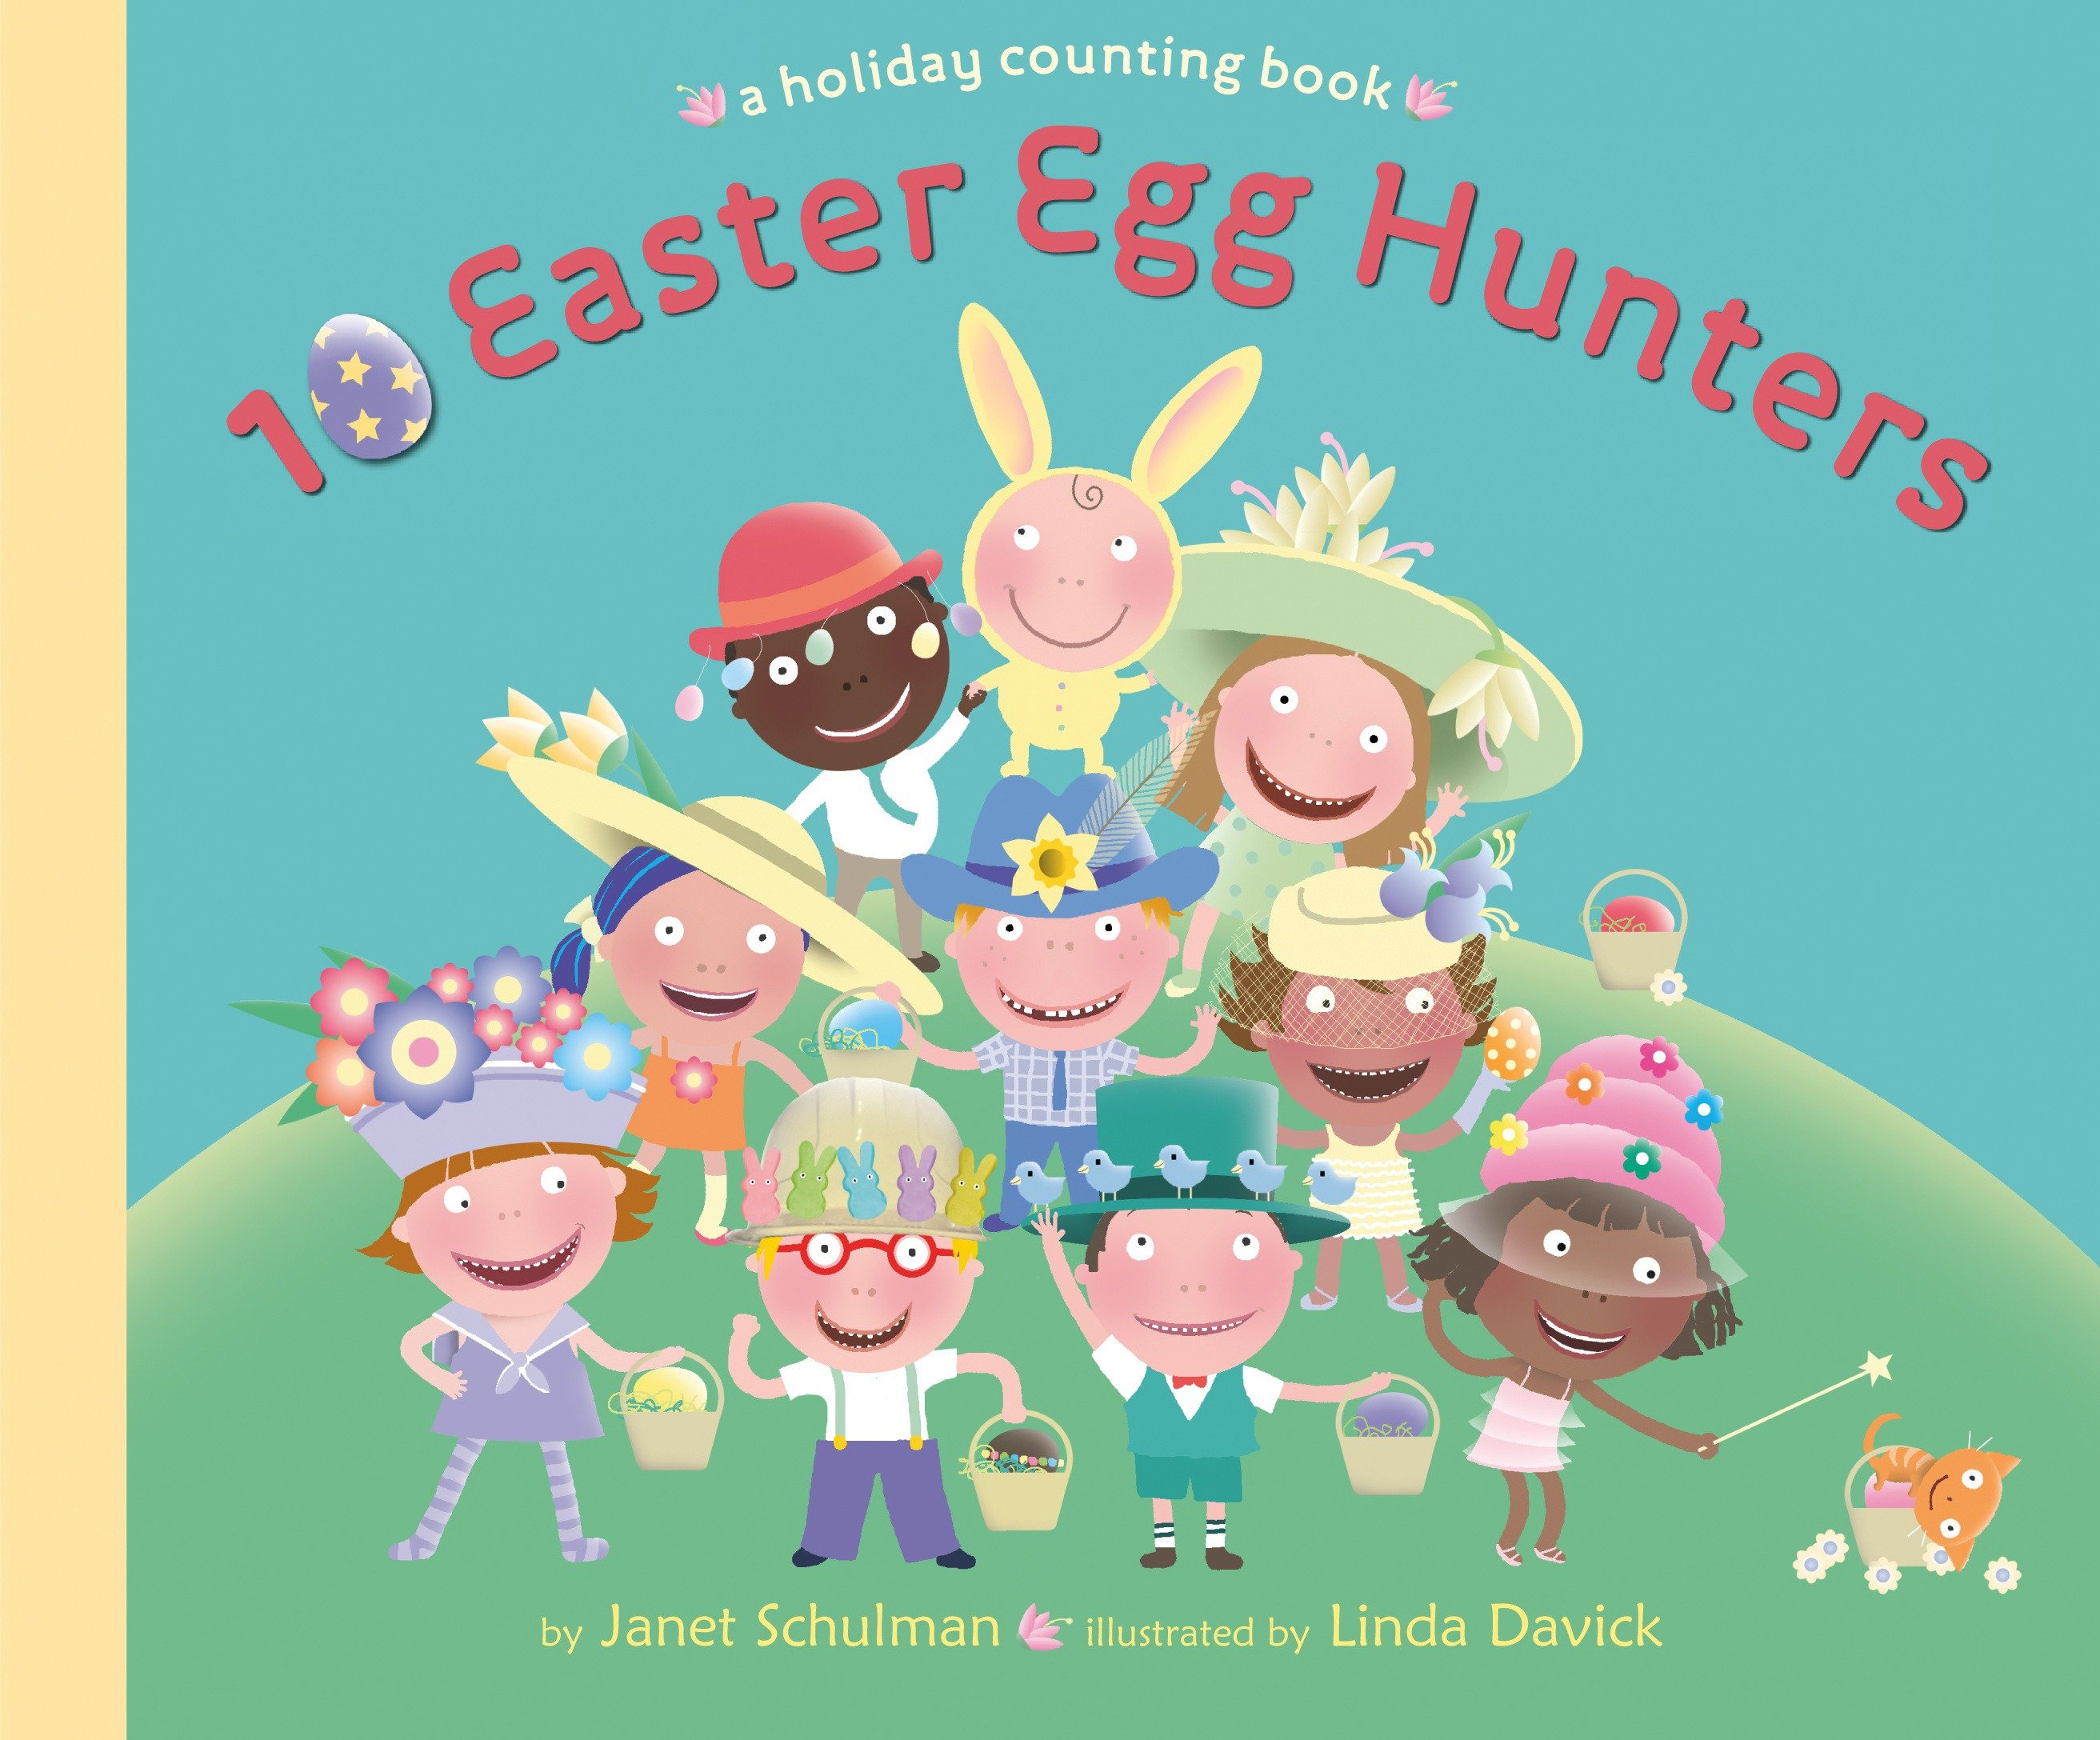 10 Easter egg hunters a holiday counting book cover image